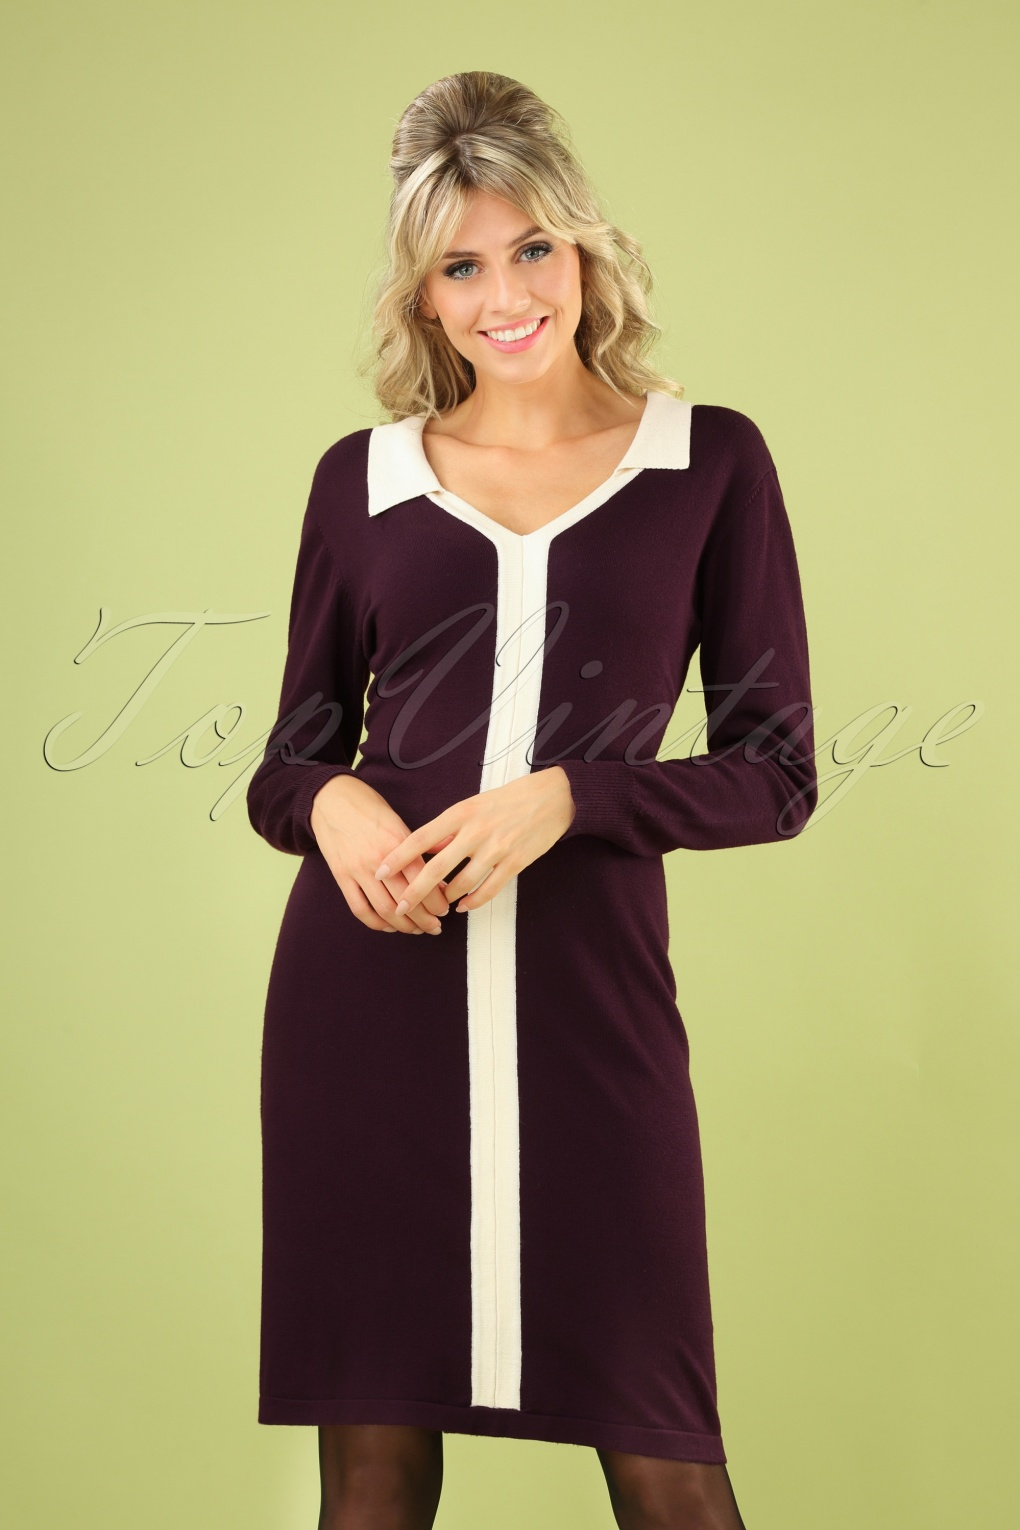 Vintage Inspired Dresses & Clothing UK 60s Cute Collar Jumper Dress in Aubergine £53.44 AT vintagedancer.com